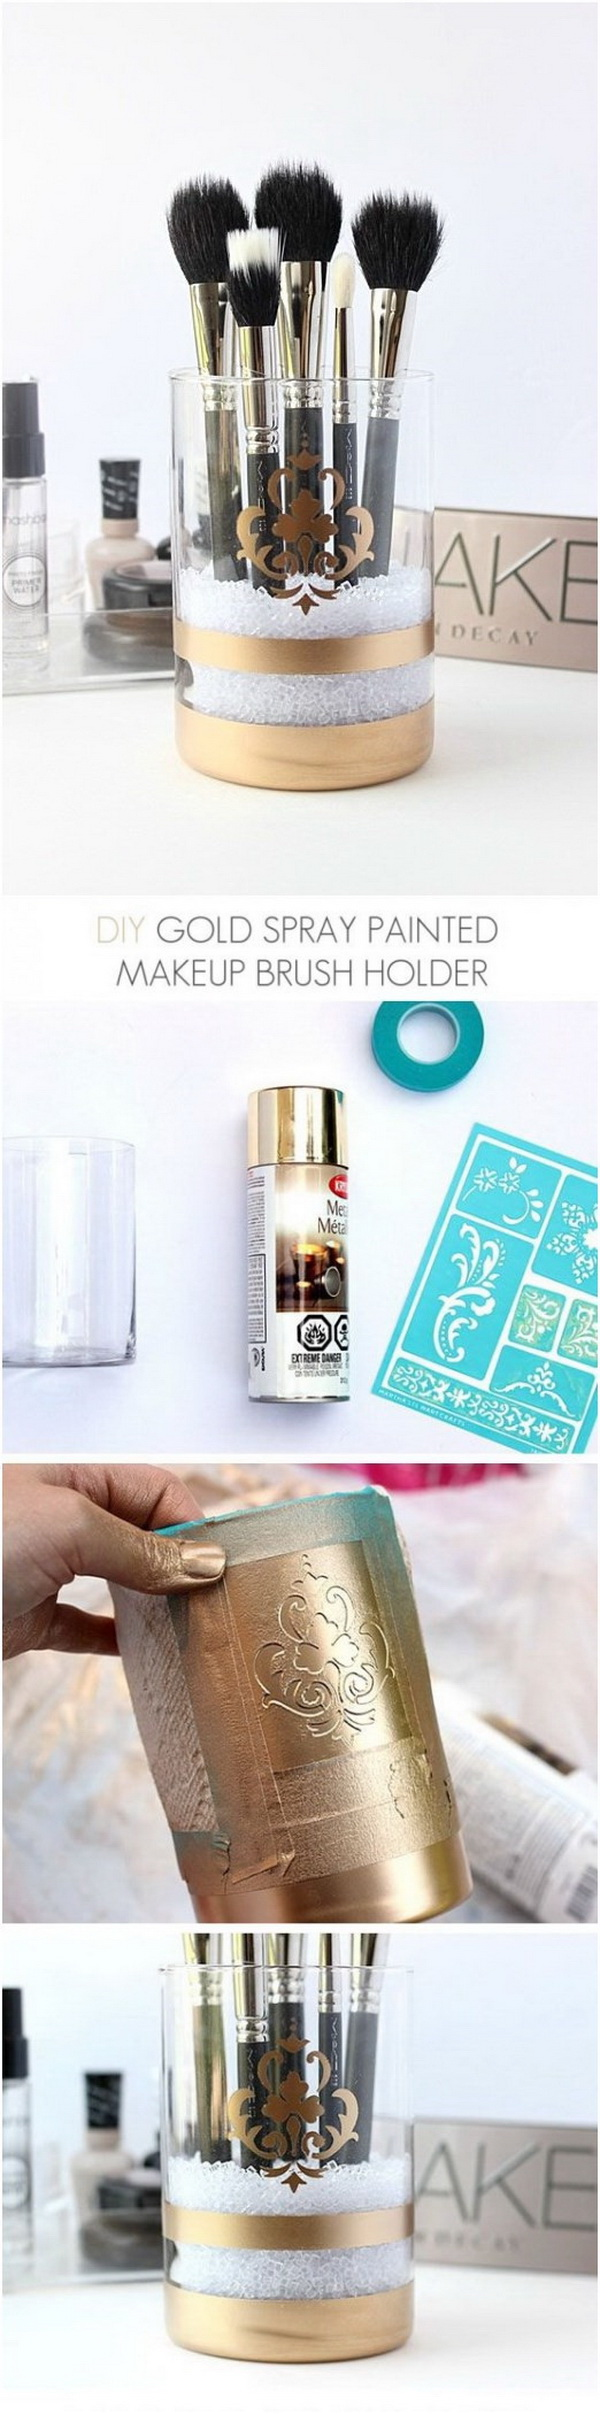 DIY Gold Spray Painted Makeup Brush Holder. With just a few steps, you can create a glam holder to organize your makeup brushes in a beautiful way. It's the perfect addition to your vanity or as a gift to teengirls.